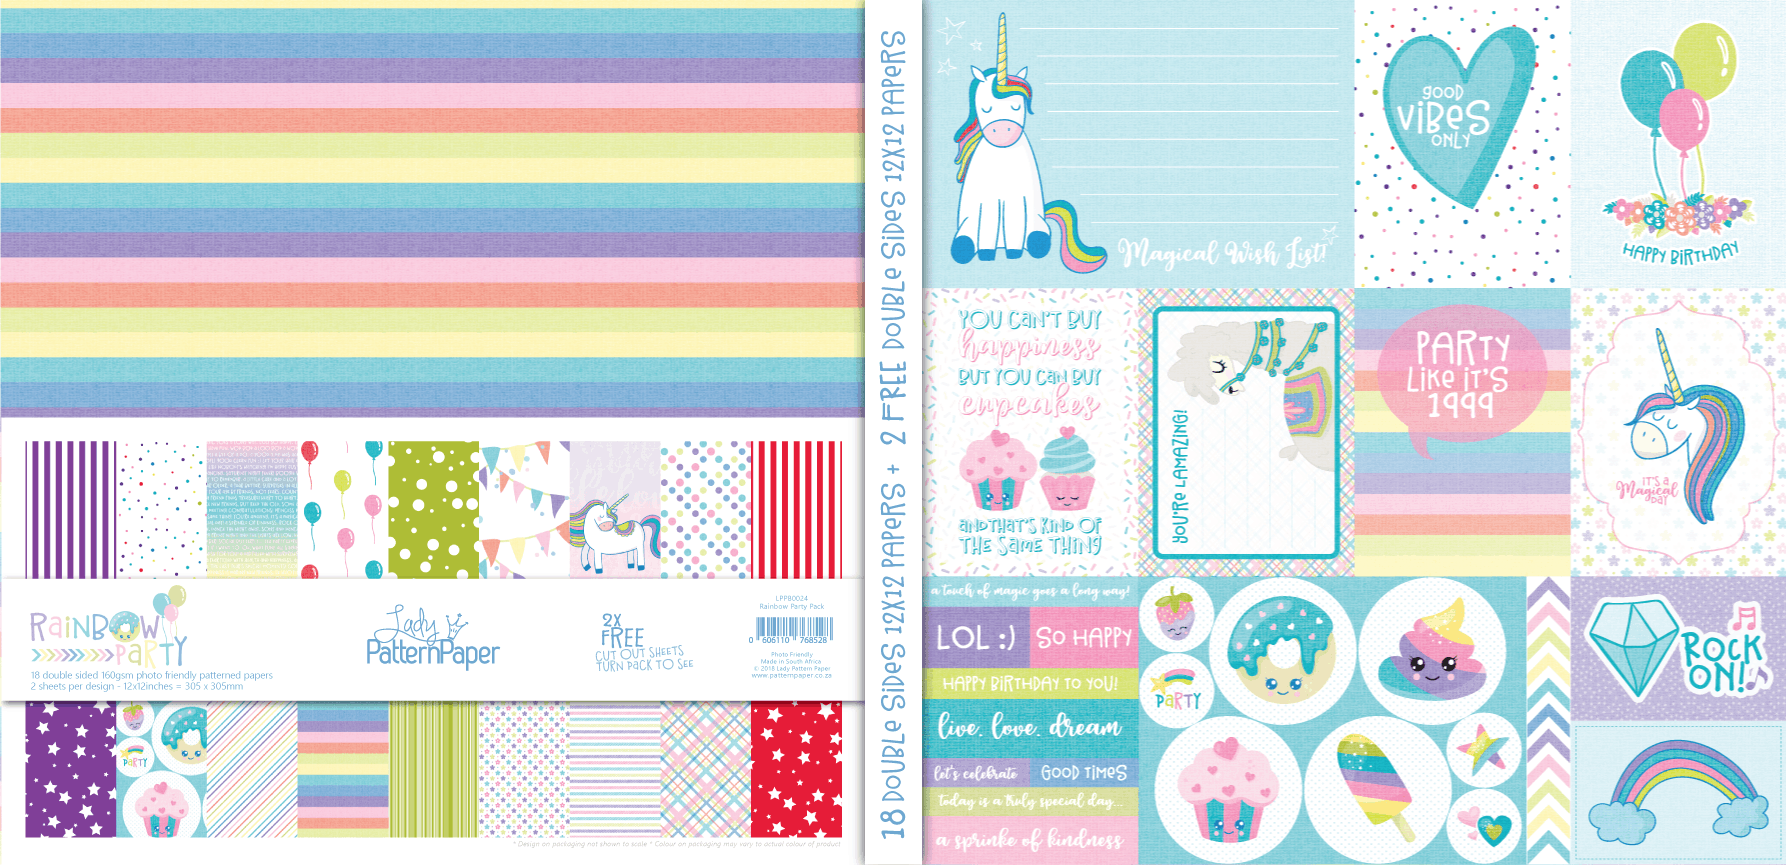 LPPB0024 - Rainbow Party Paper Pack